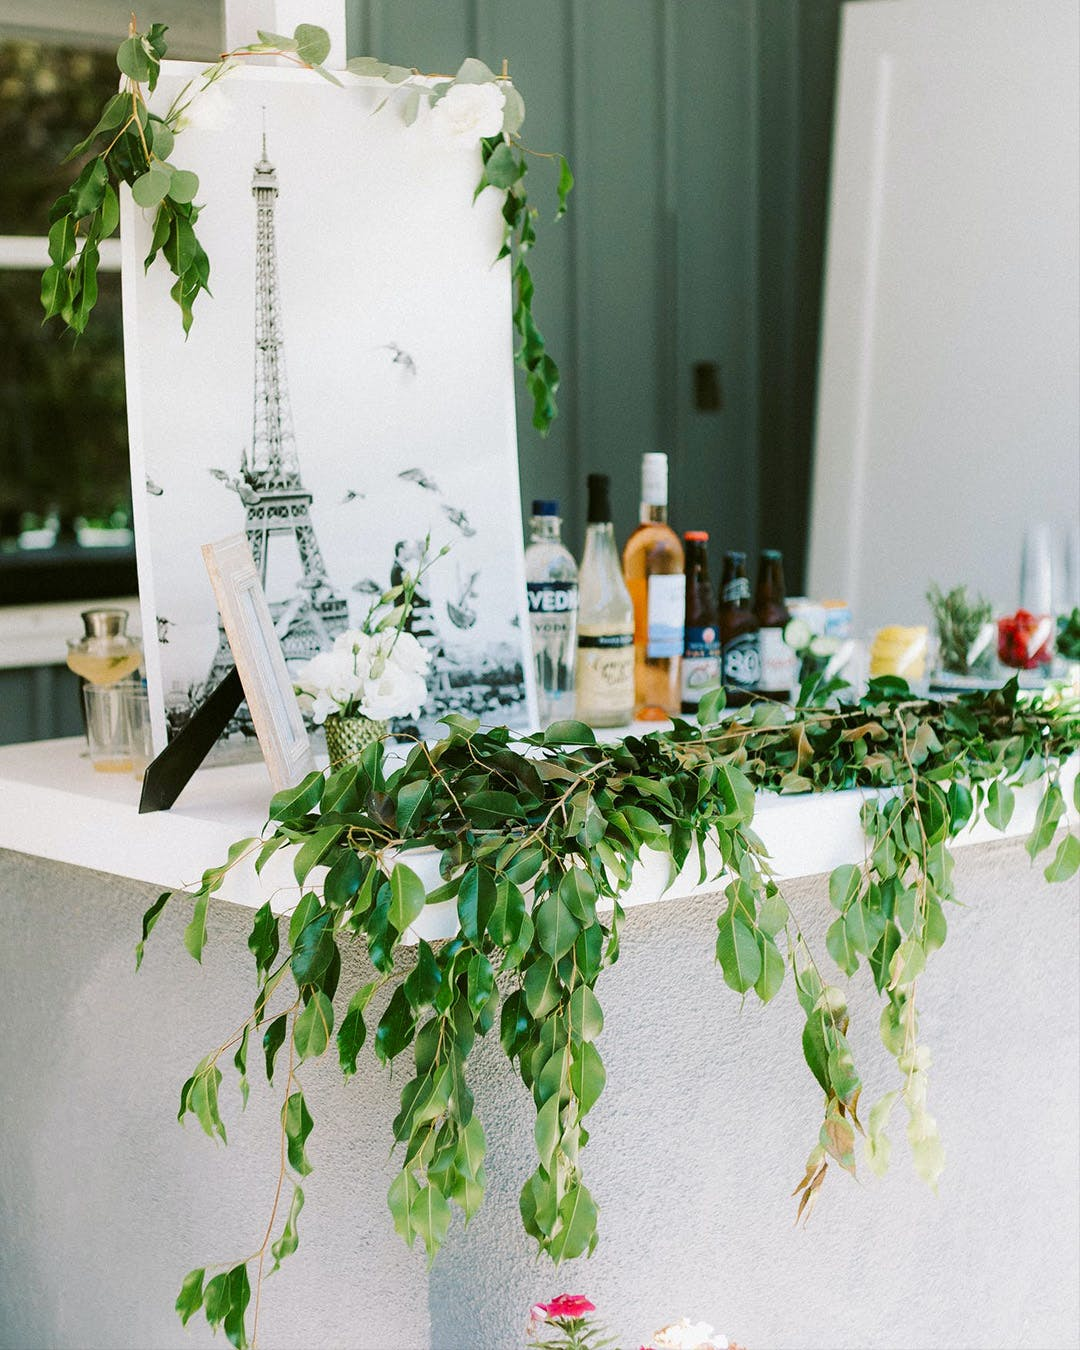 Bar set up with greenery and Signage of the Eiffel Tower for Paris-themed engagement party | PartySlate